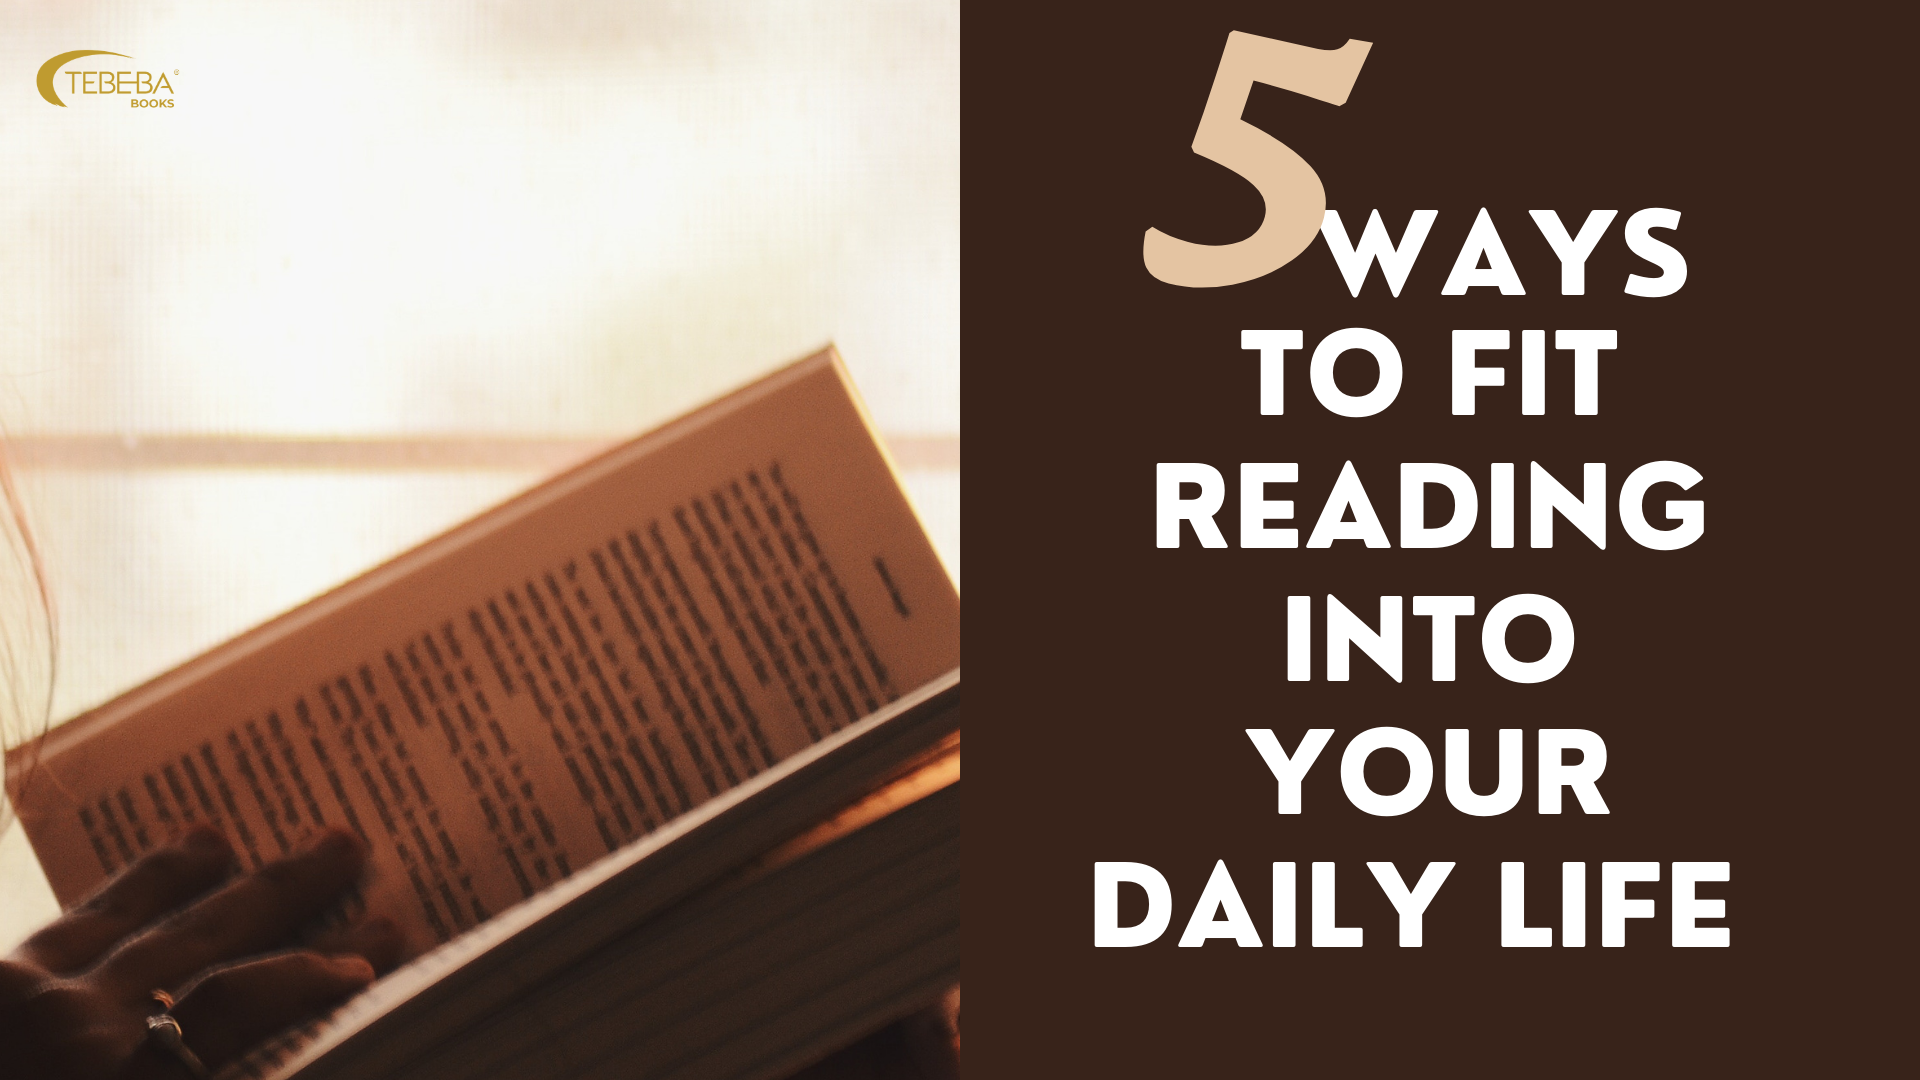 5 Ways to Fit Reading Into Your Daily Life